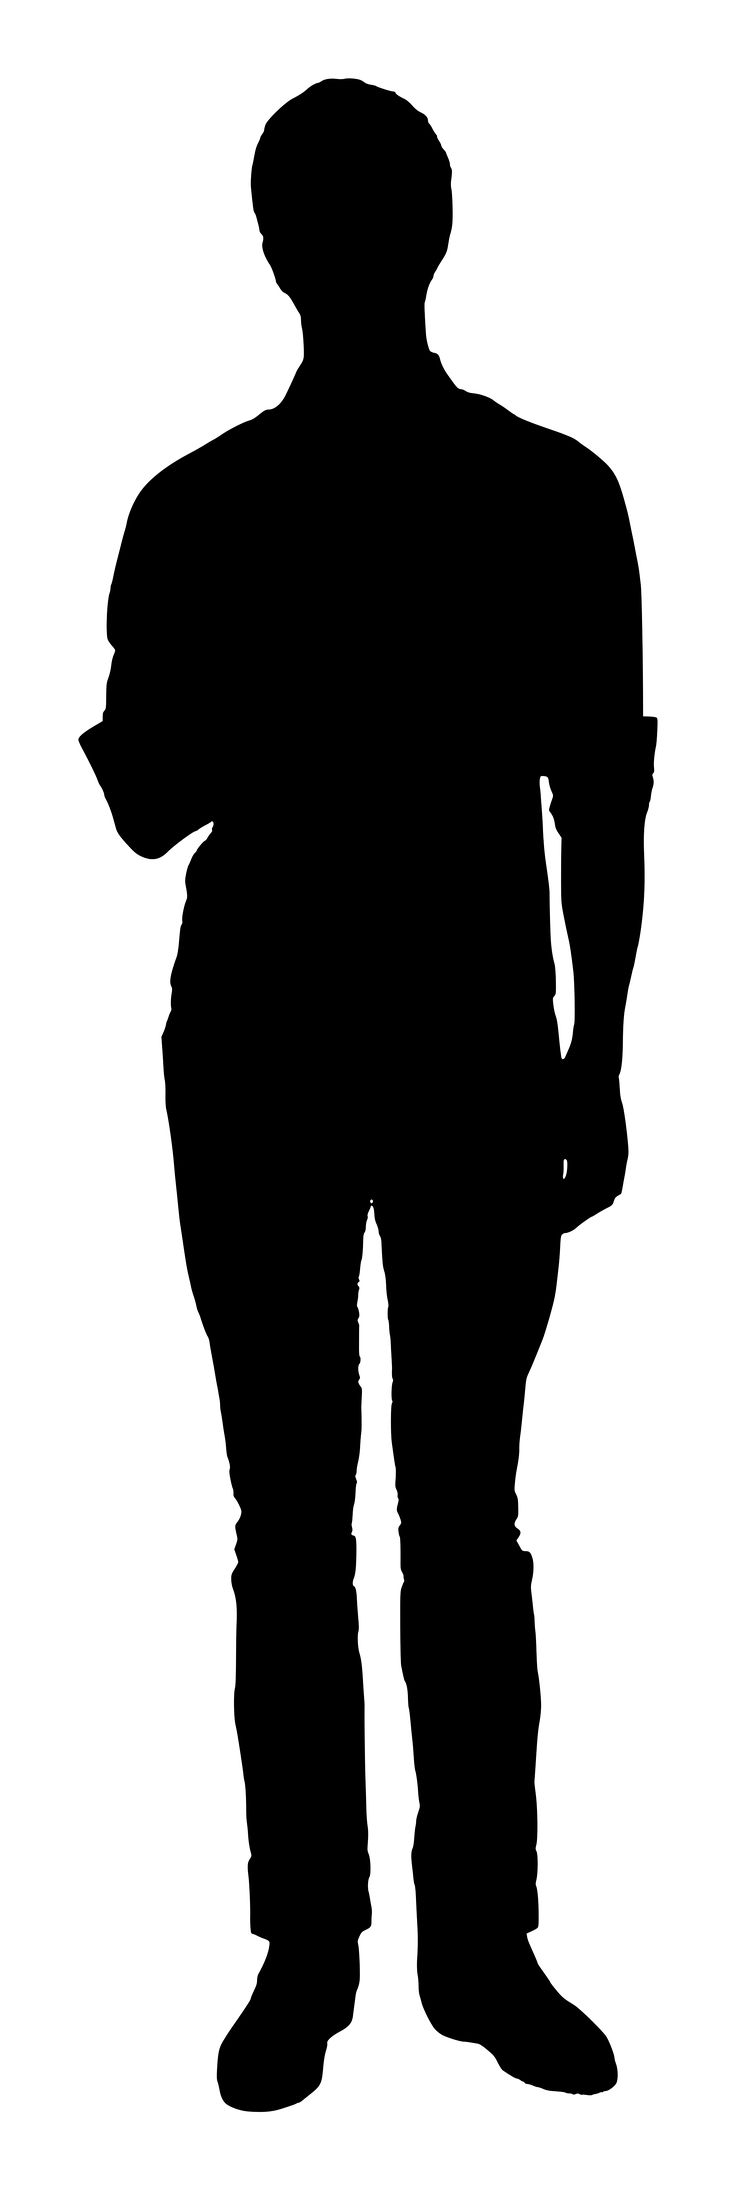 736x2190 64 Best Silhouette Images On Search, African Symbols